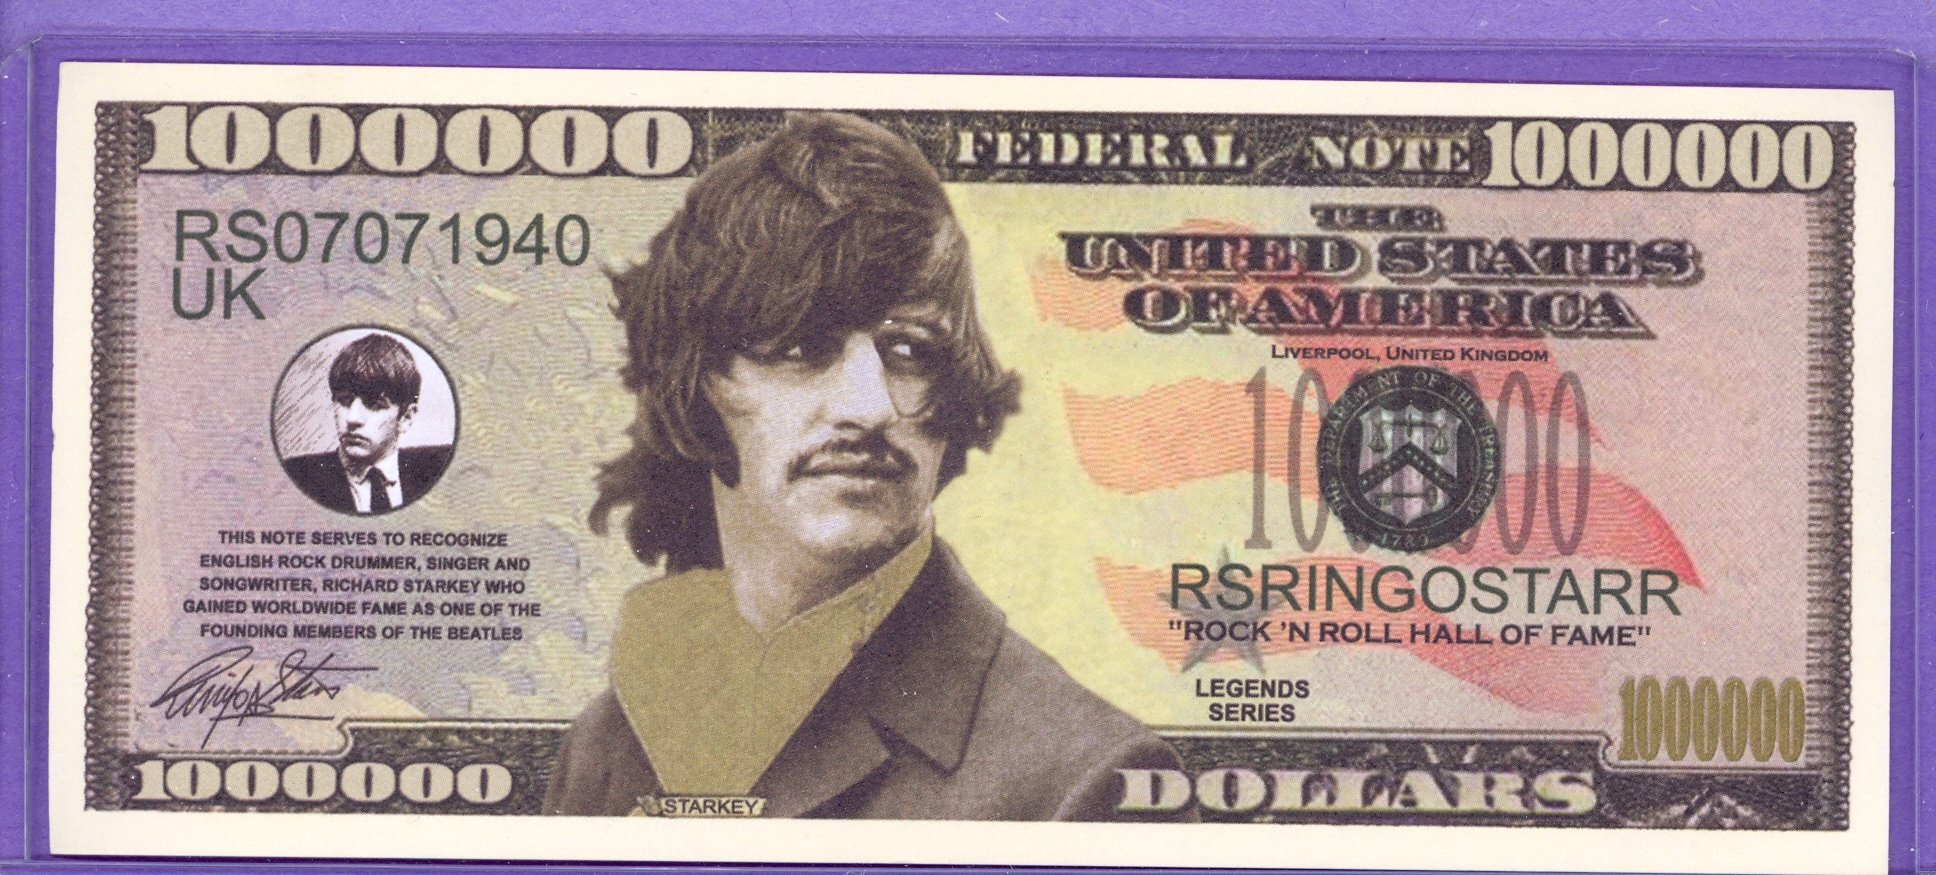 Ringo Starr Million Dollar Note - The Beatles